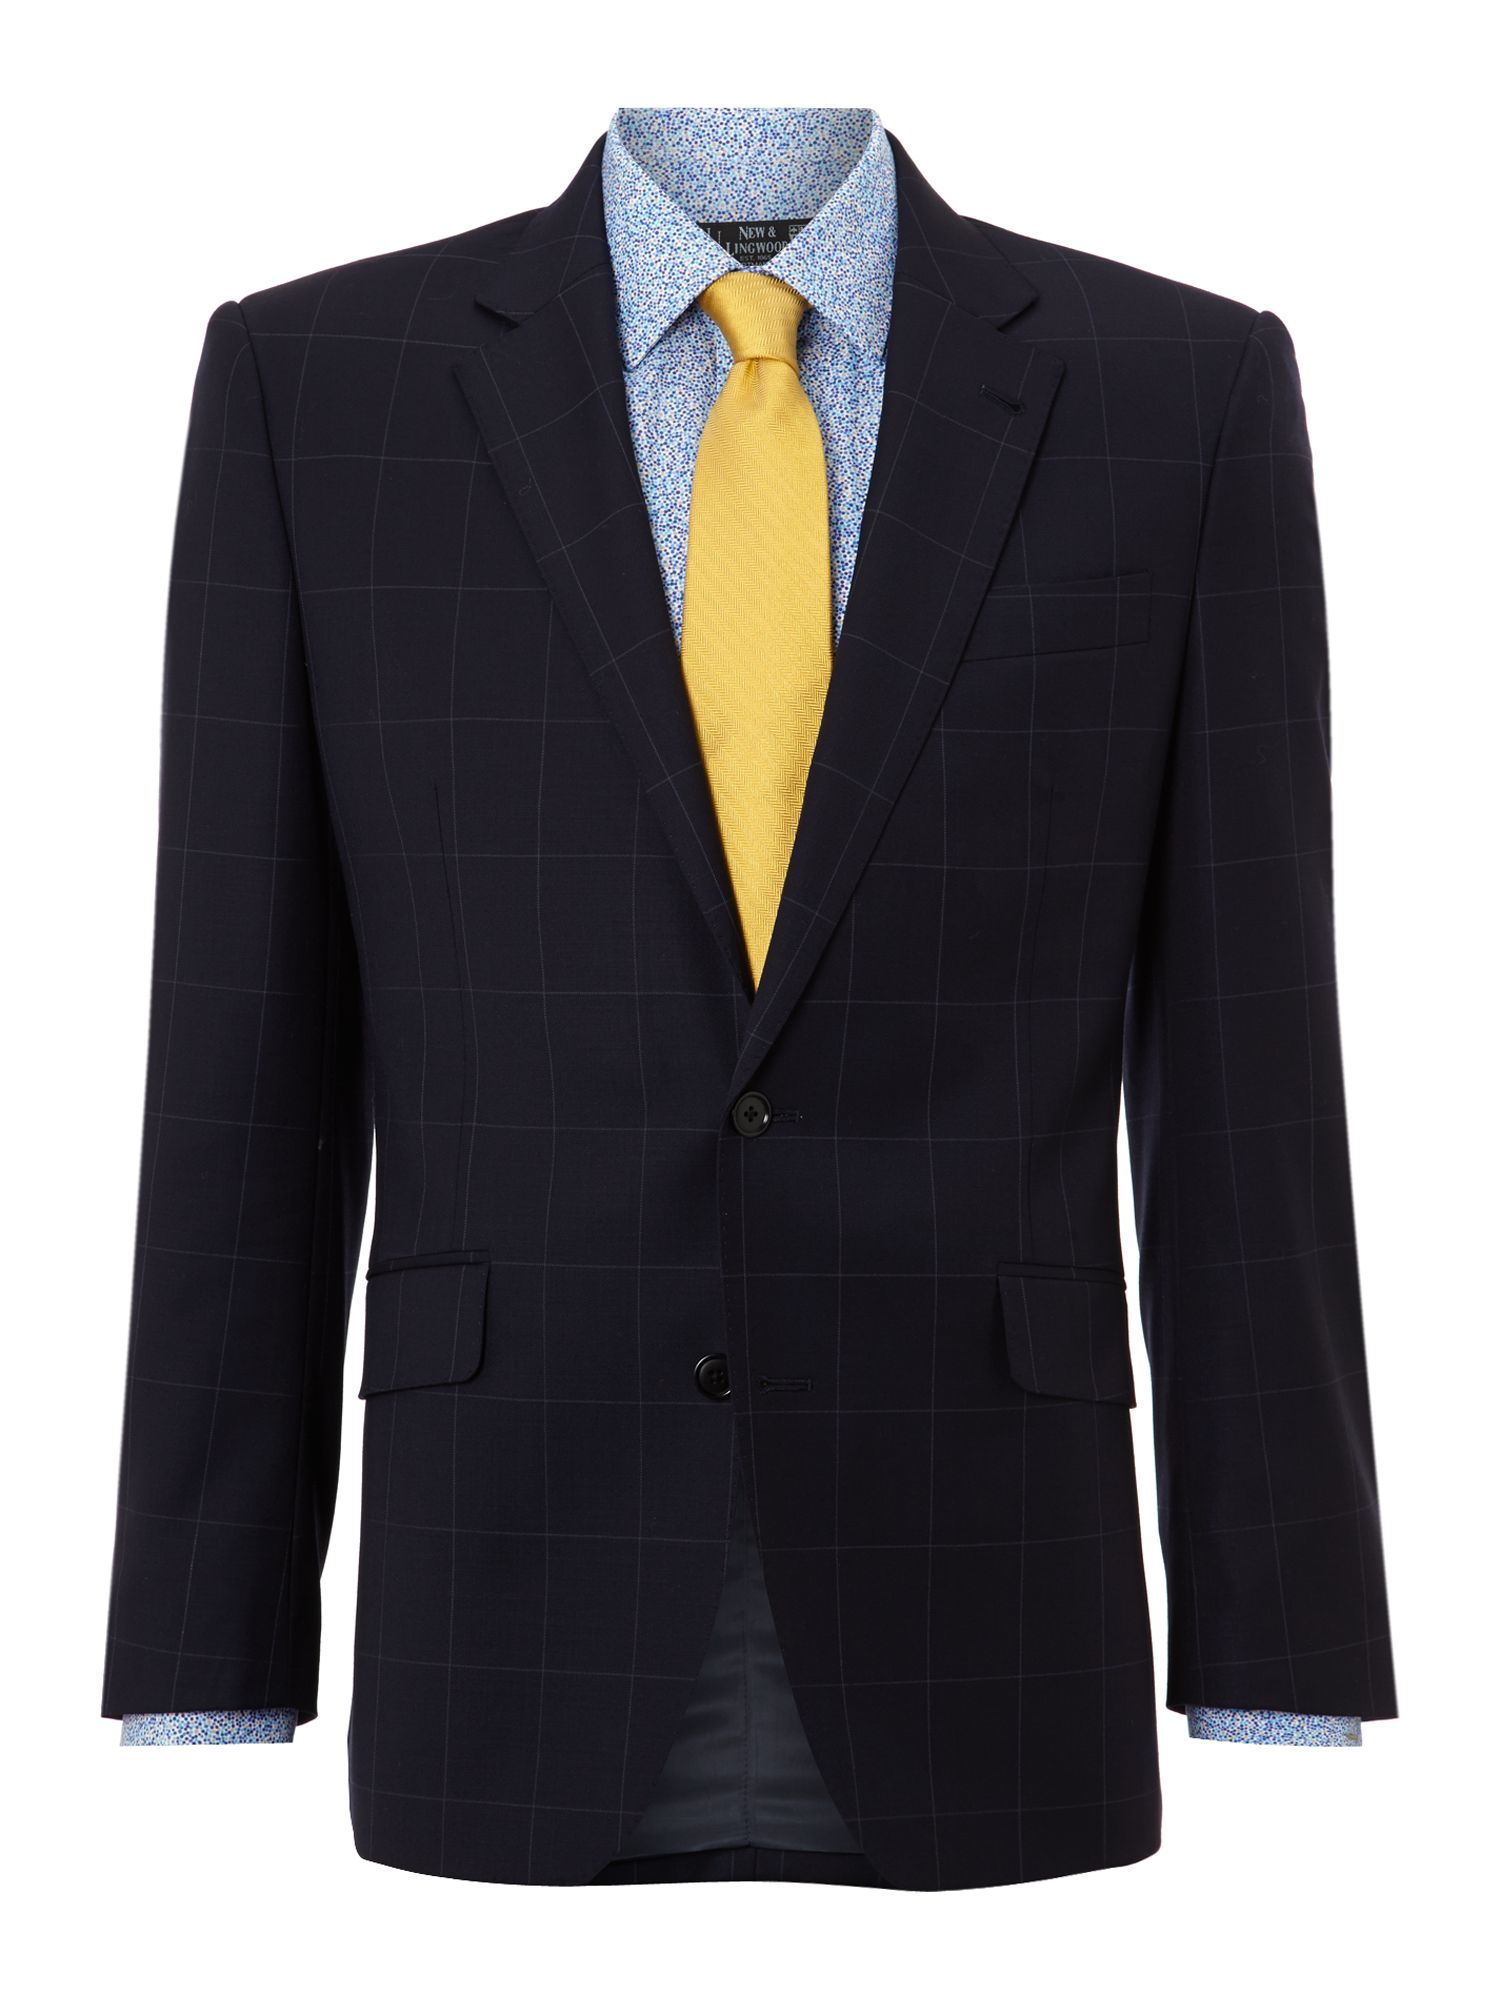 Derwent notch windowpane twill suit jacket